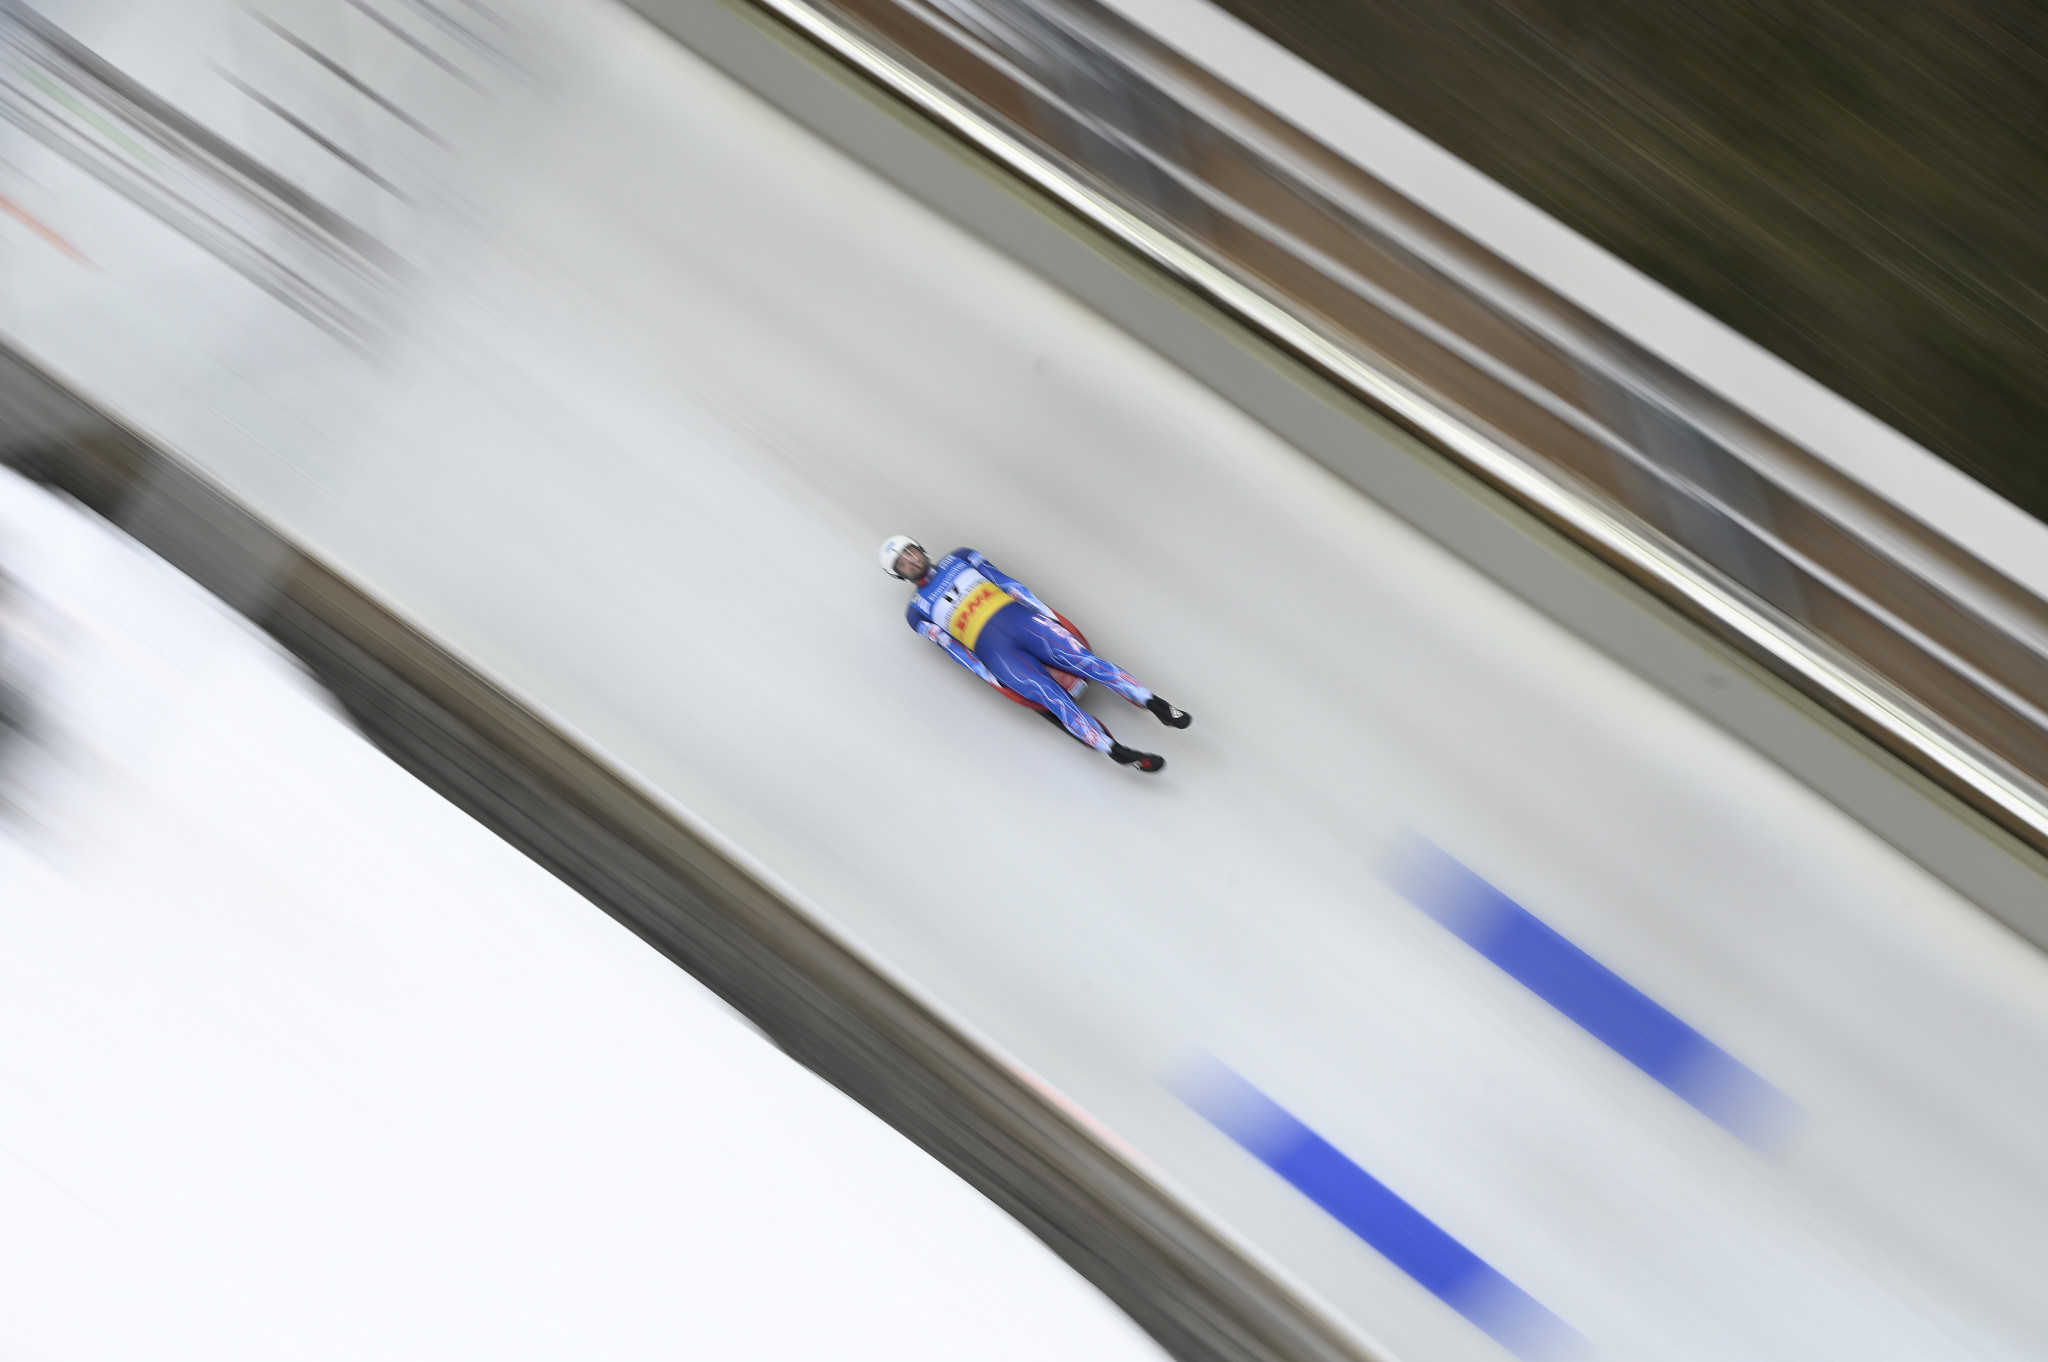 A series of new videos will be released to mark a new partnership between USA Luge and White Castle ©Getty Images